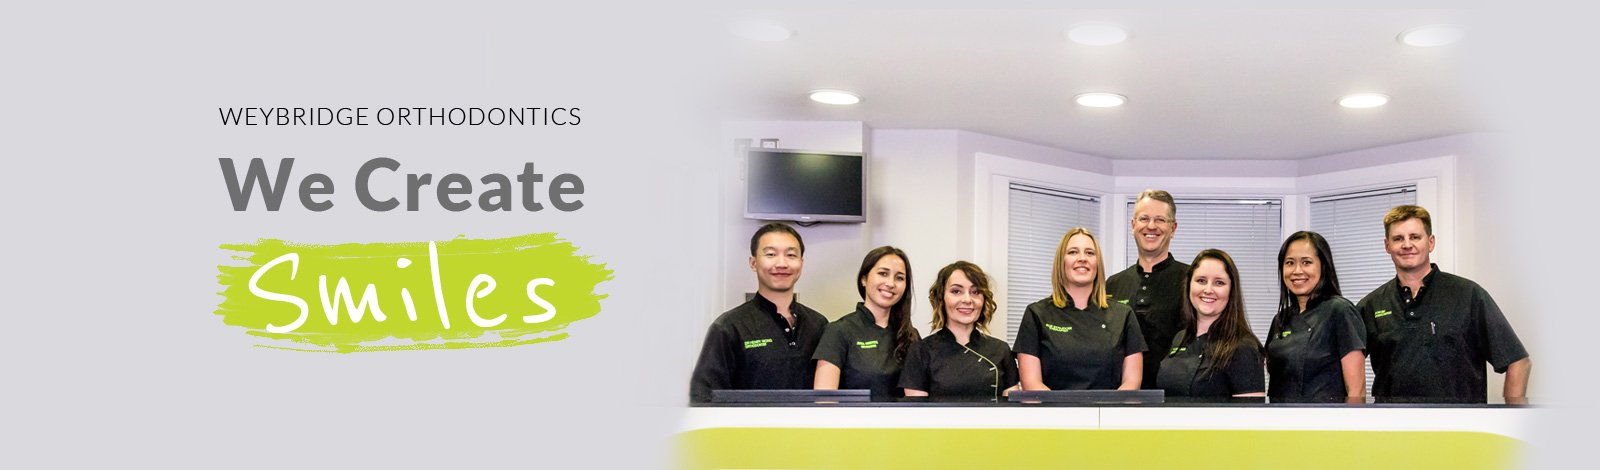 Our Promise - Dentist in Weybridge